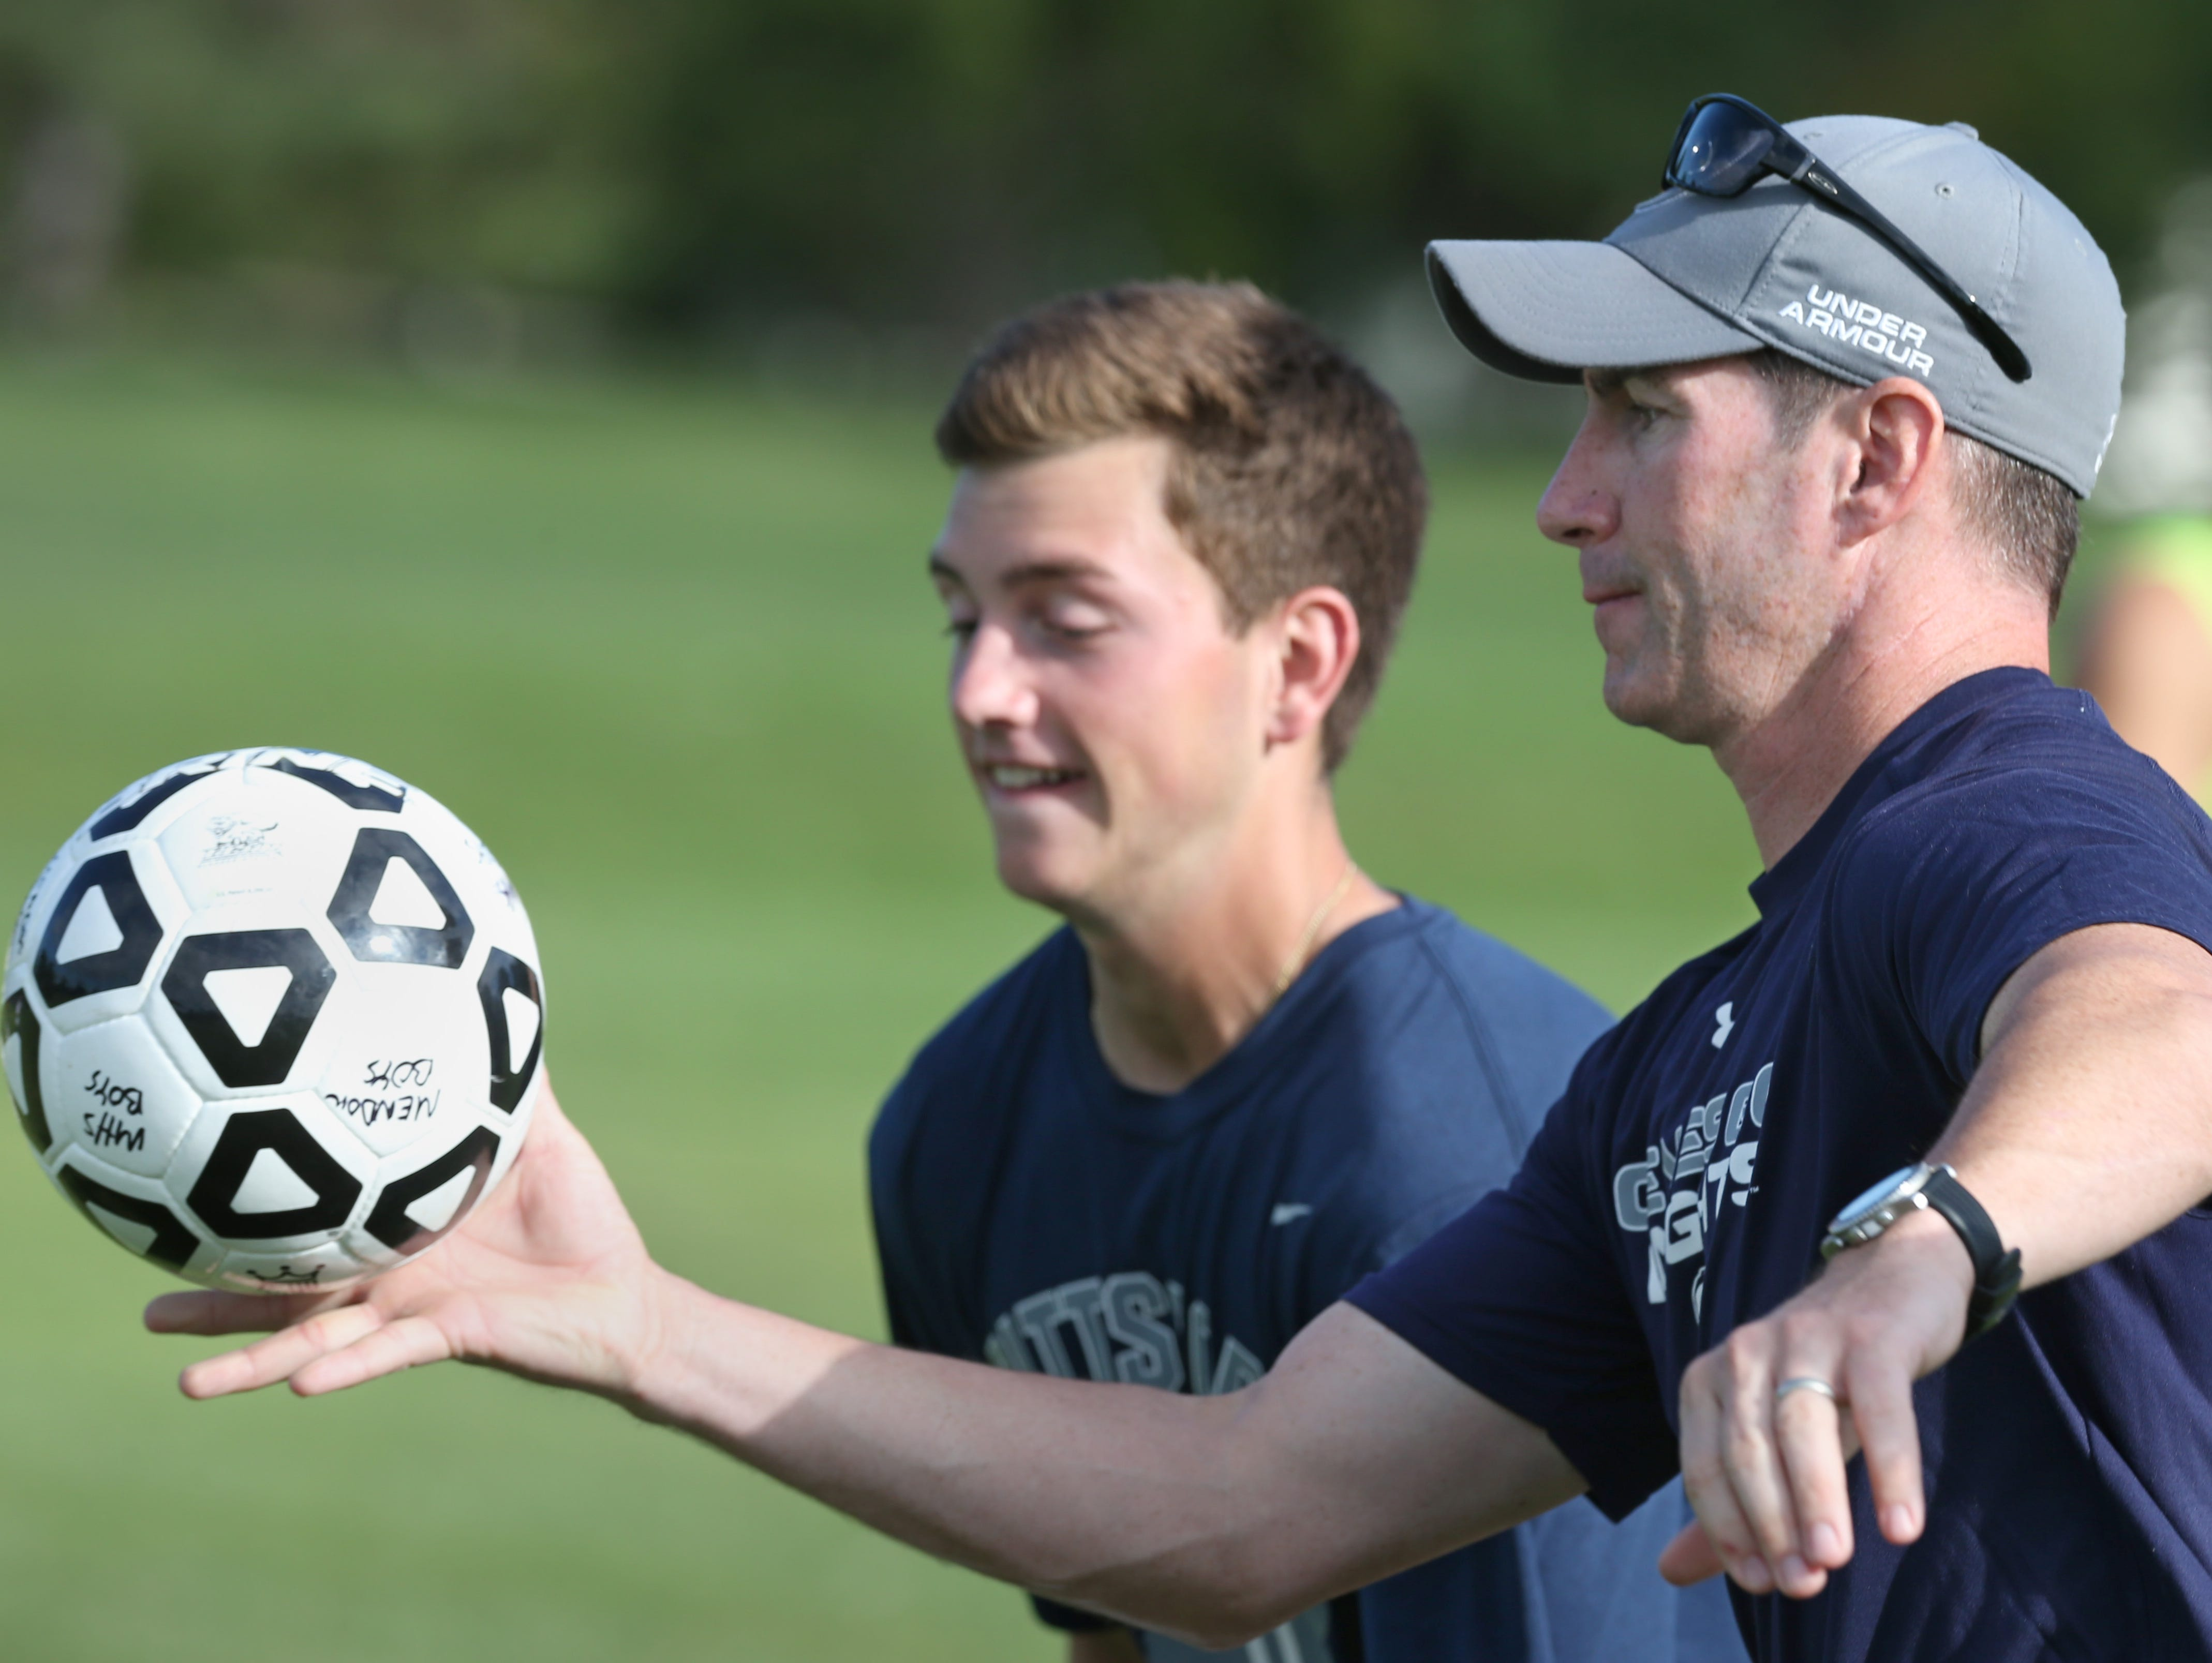 Pittsford Mendon boys varsity soccer coach Mark Hurley boots the ball downfield as he leads the team through practice at Hopkins Park in Mendon Tuesday, Sept. 22, 2015.